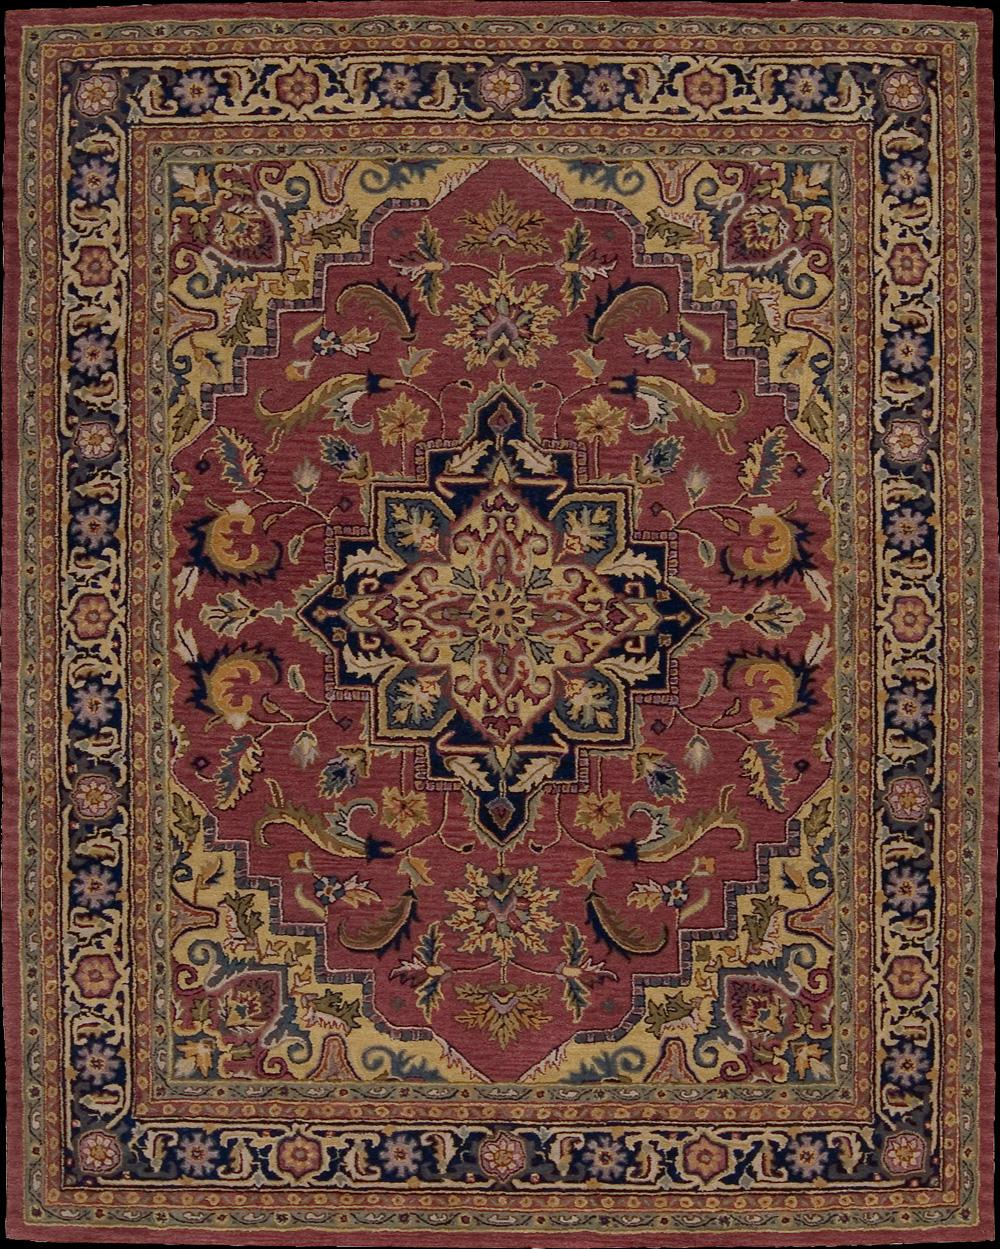 Nourison India House Area Rug 5' x 8' - Item Number: 4435